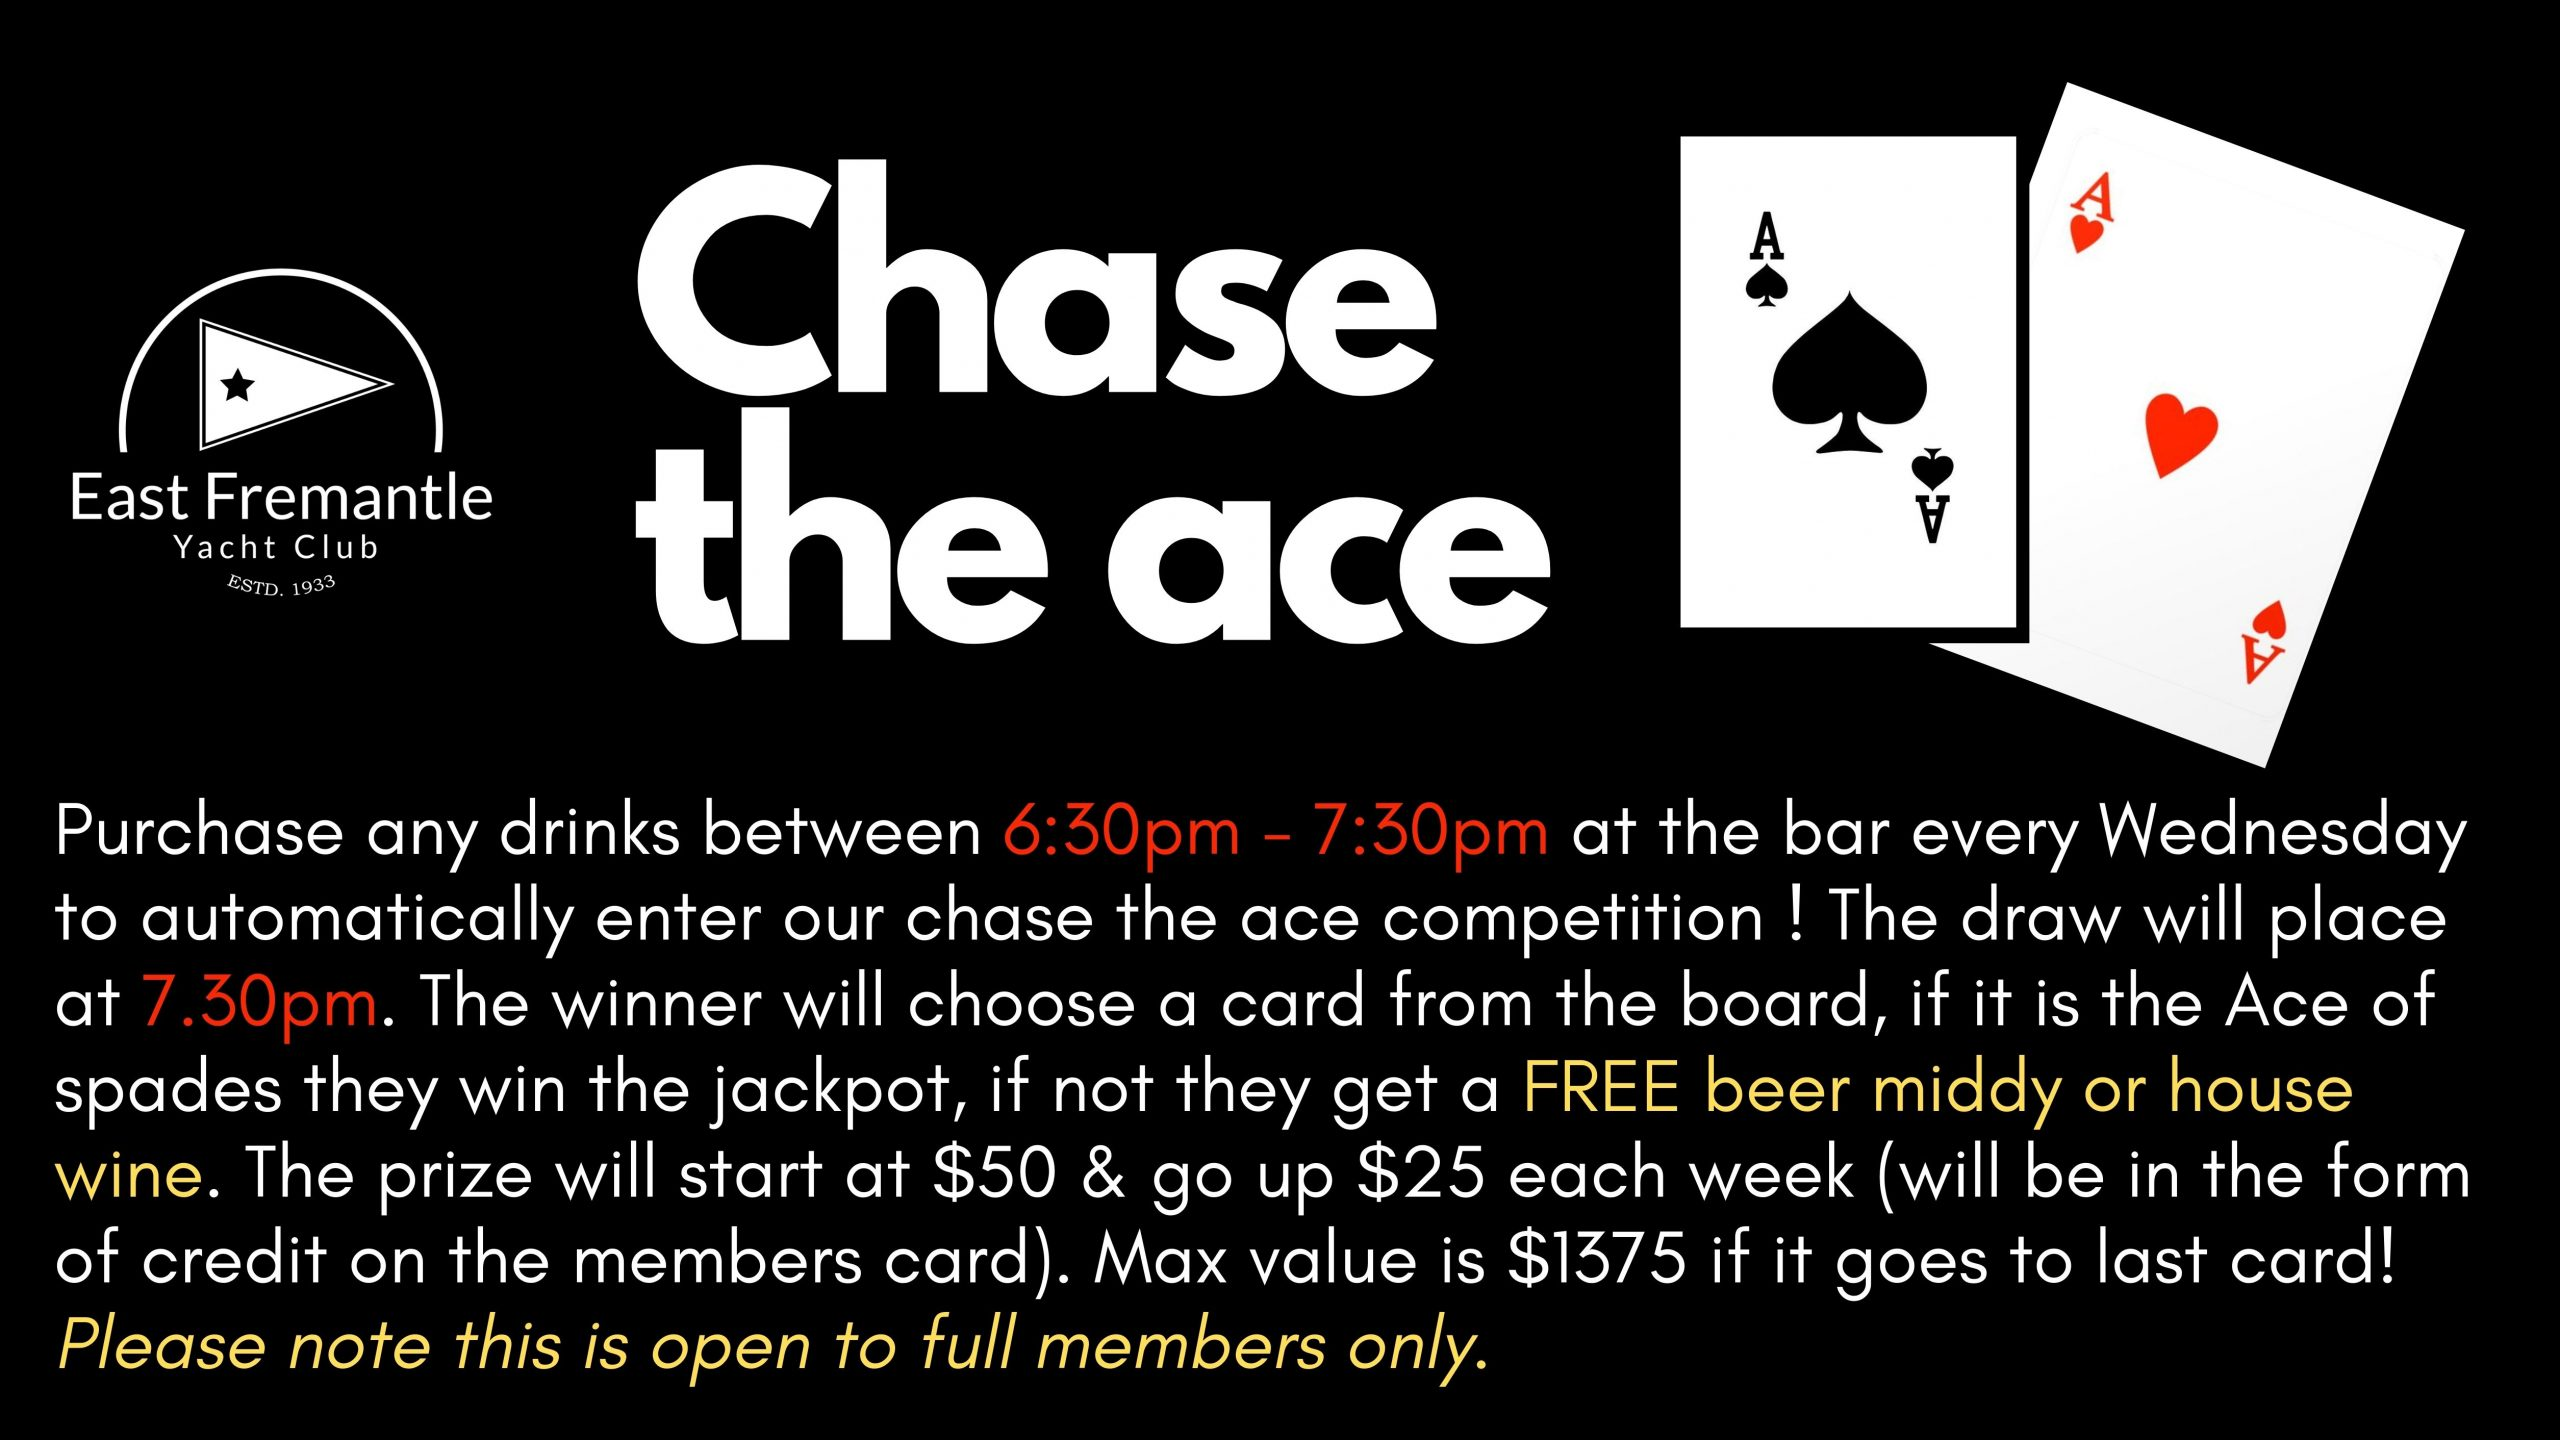 Chase the ace_TVs (2)